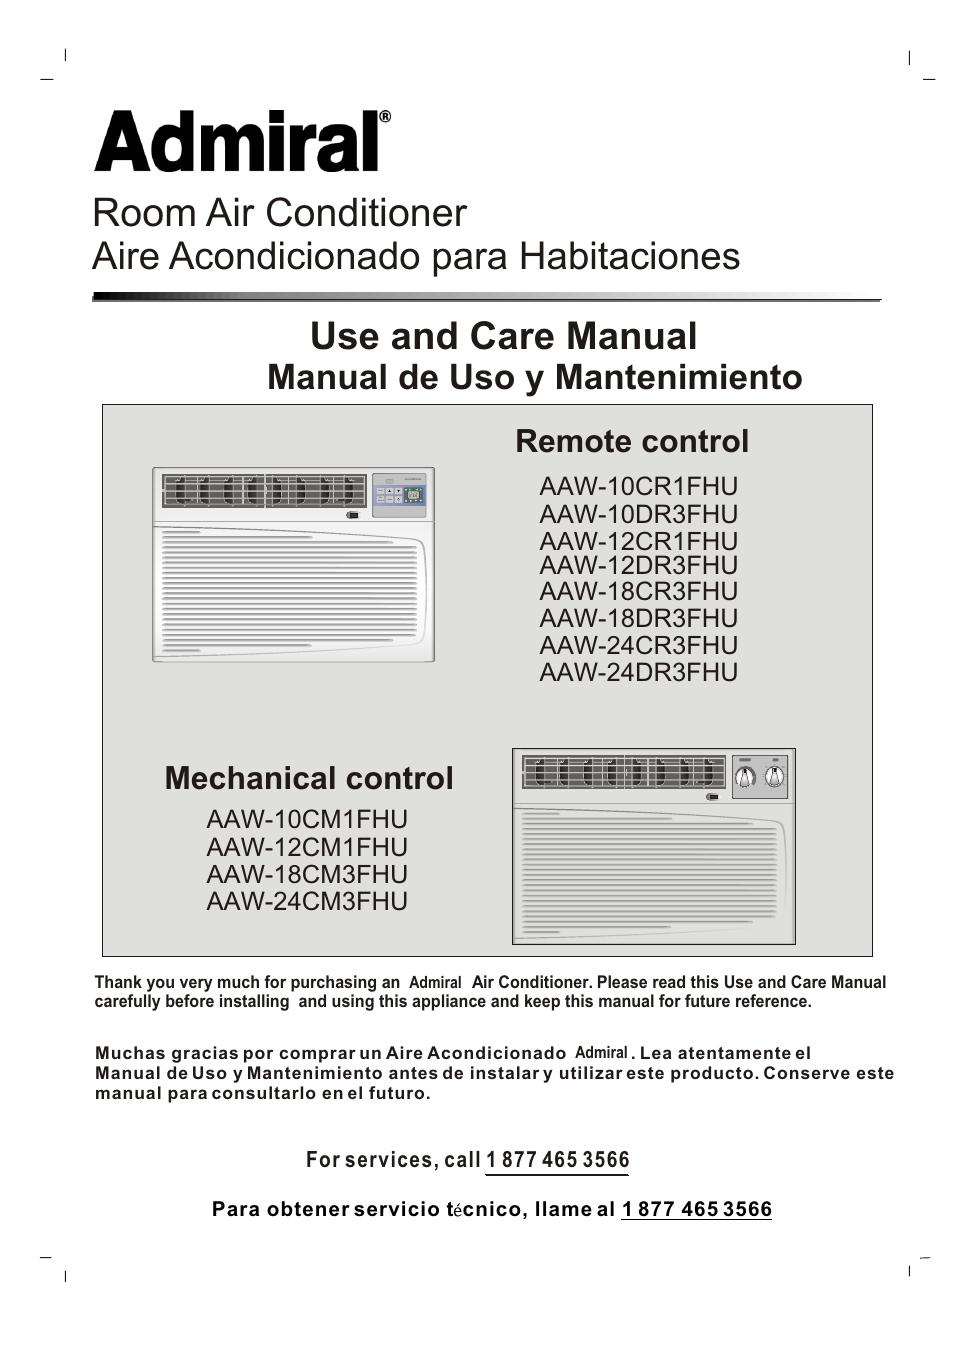 admiral bread machine maker instruction manual u0026 recipes Array - admiral  aaw 24cm3fhu user manual 35 pages also for aaw 18cr3fhu rh manualsdir com